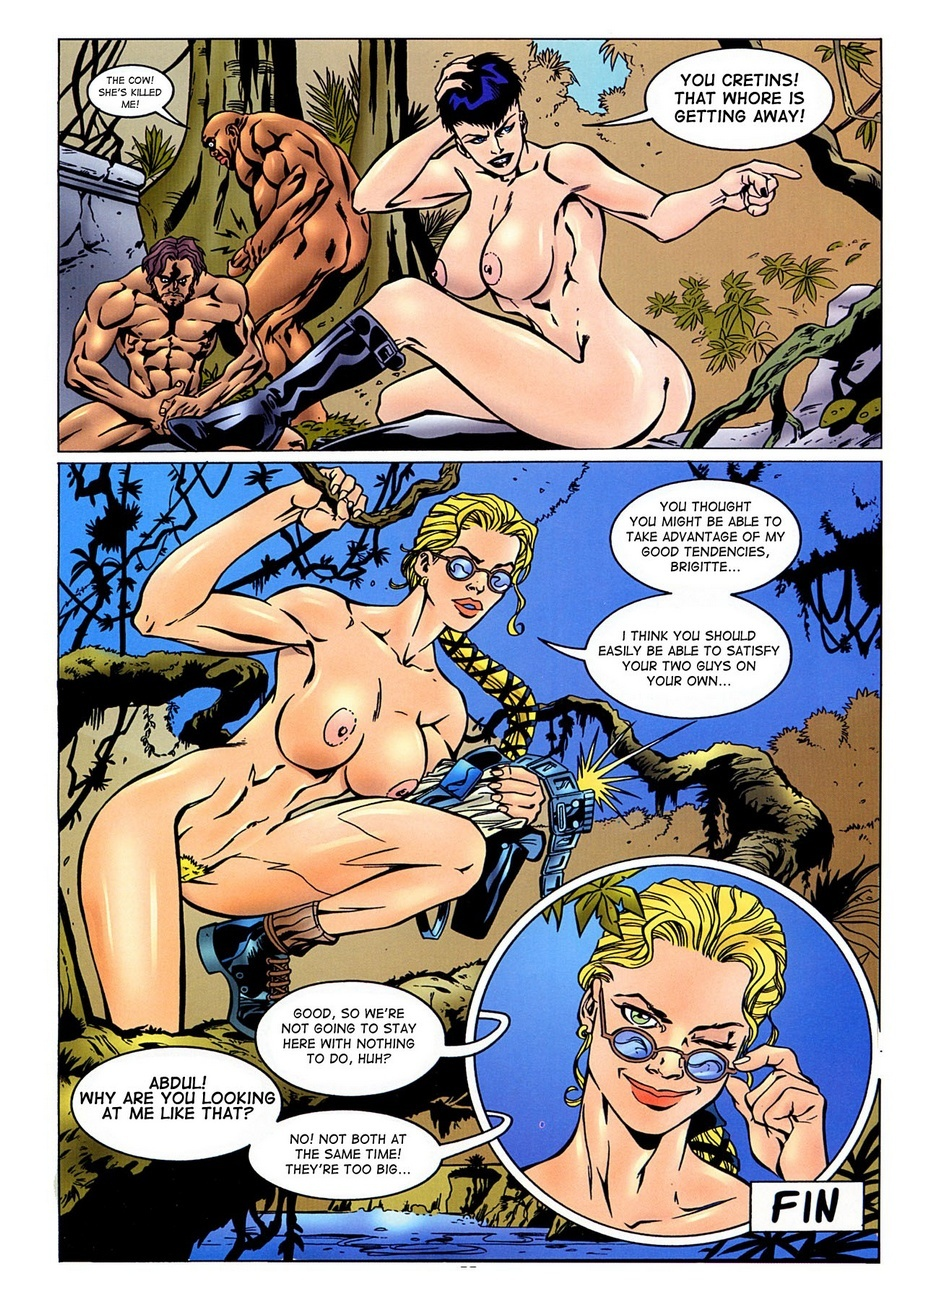 Lara Jones – The Final Penetration Sex Comic